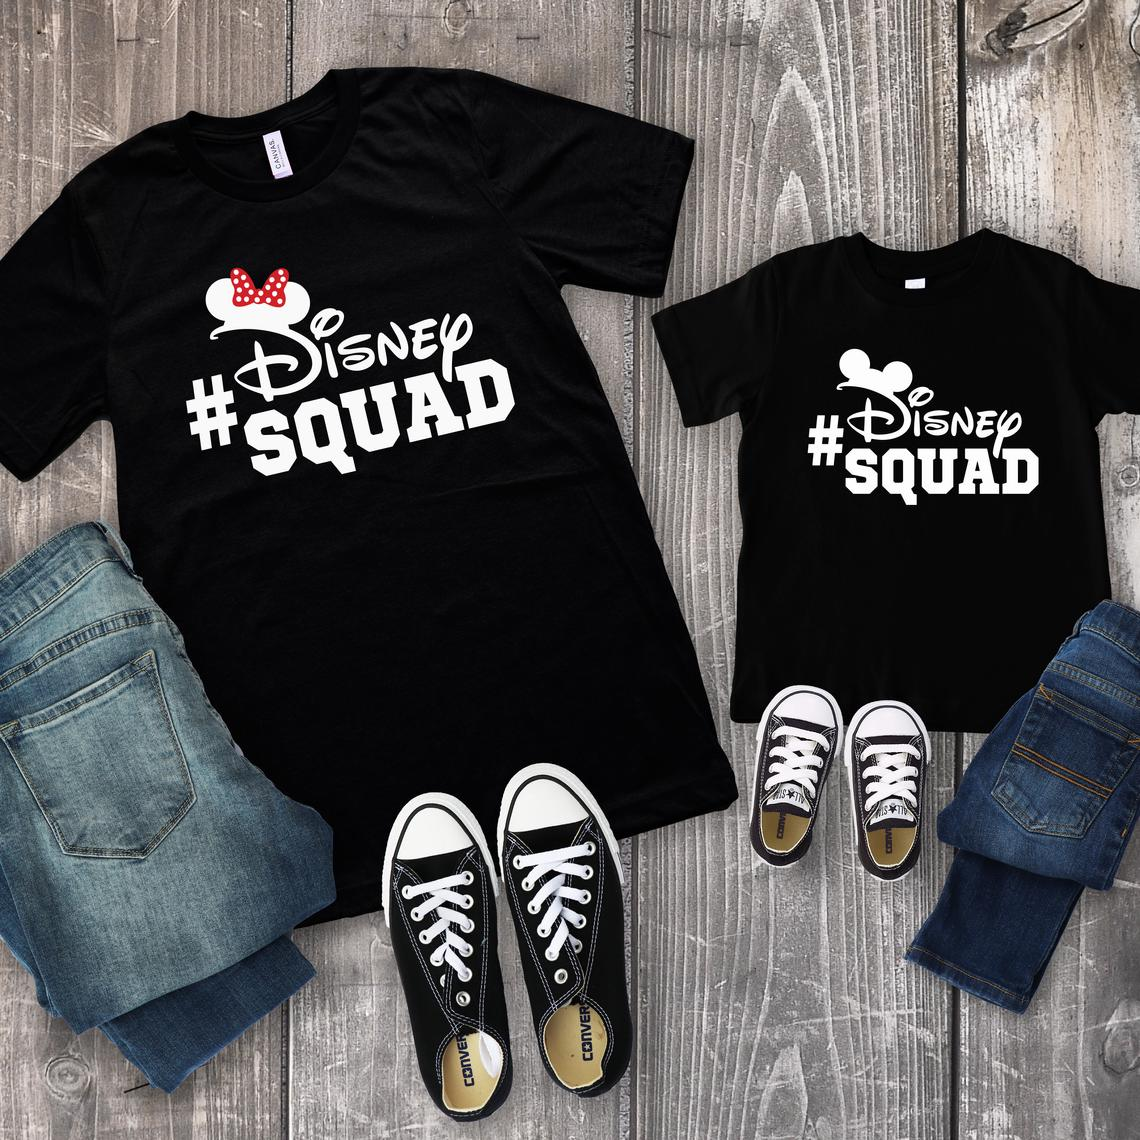 Disney Family Shirts - Custom Disney Shirts to Wear to Disney World